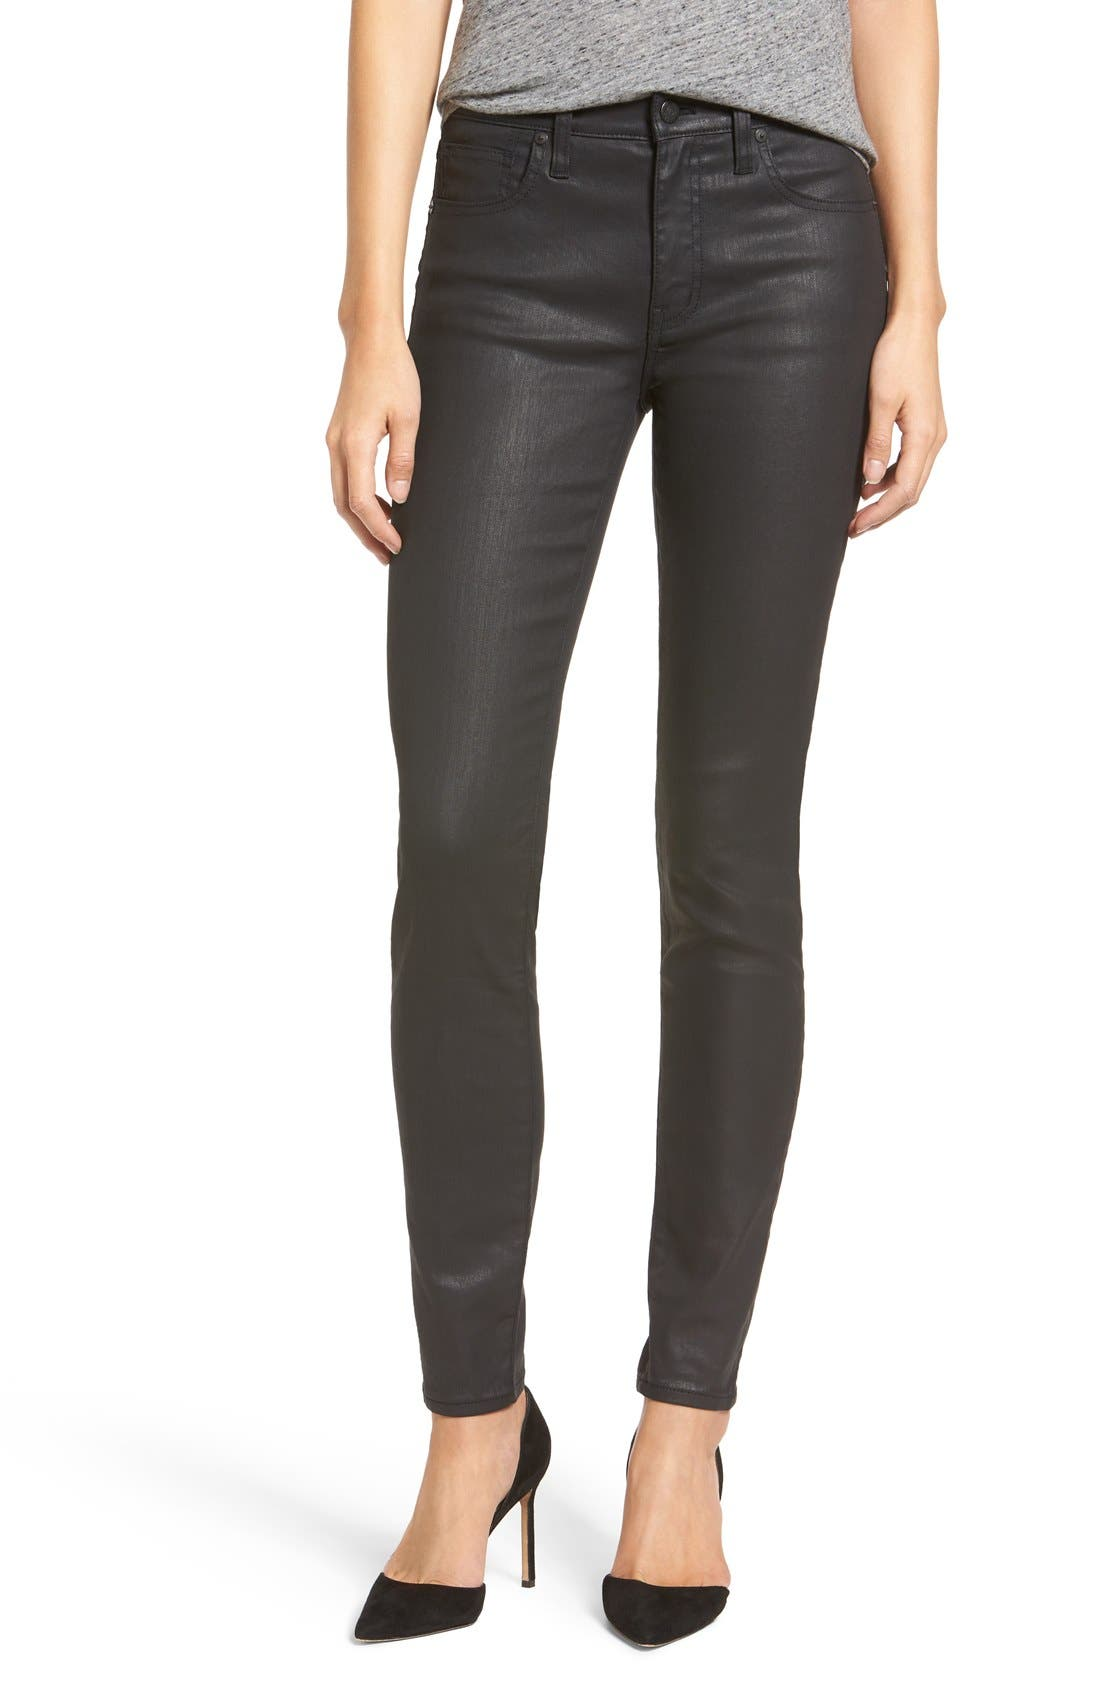 MADEWELL High Riser Coated Skinny Jeans